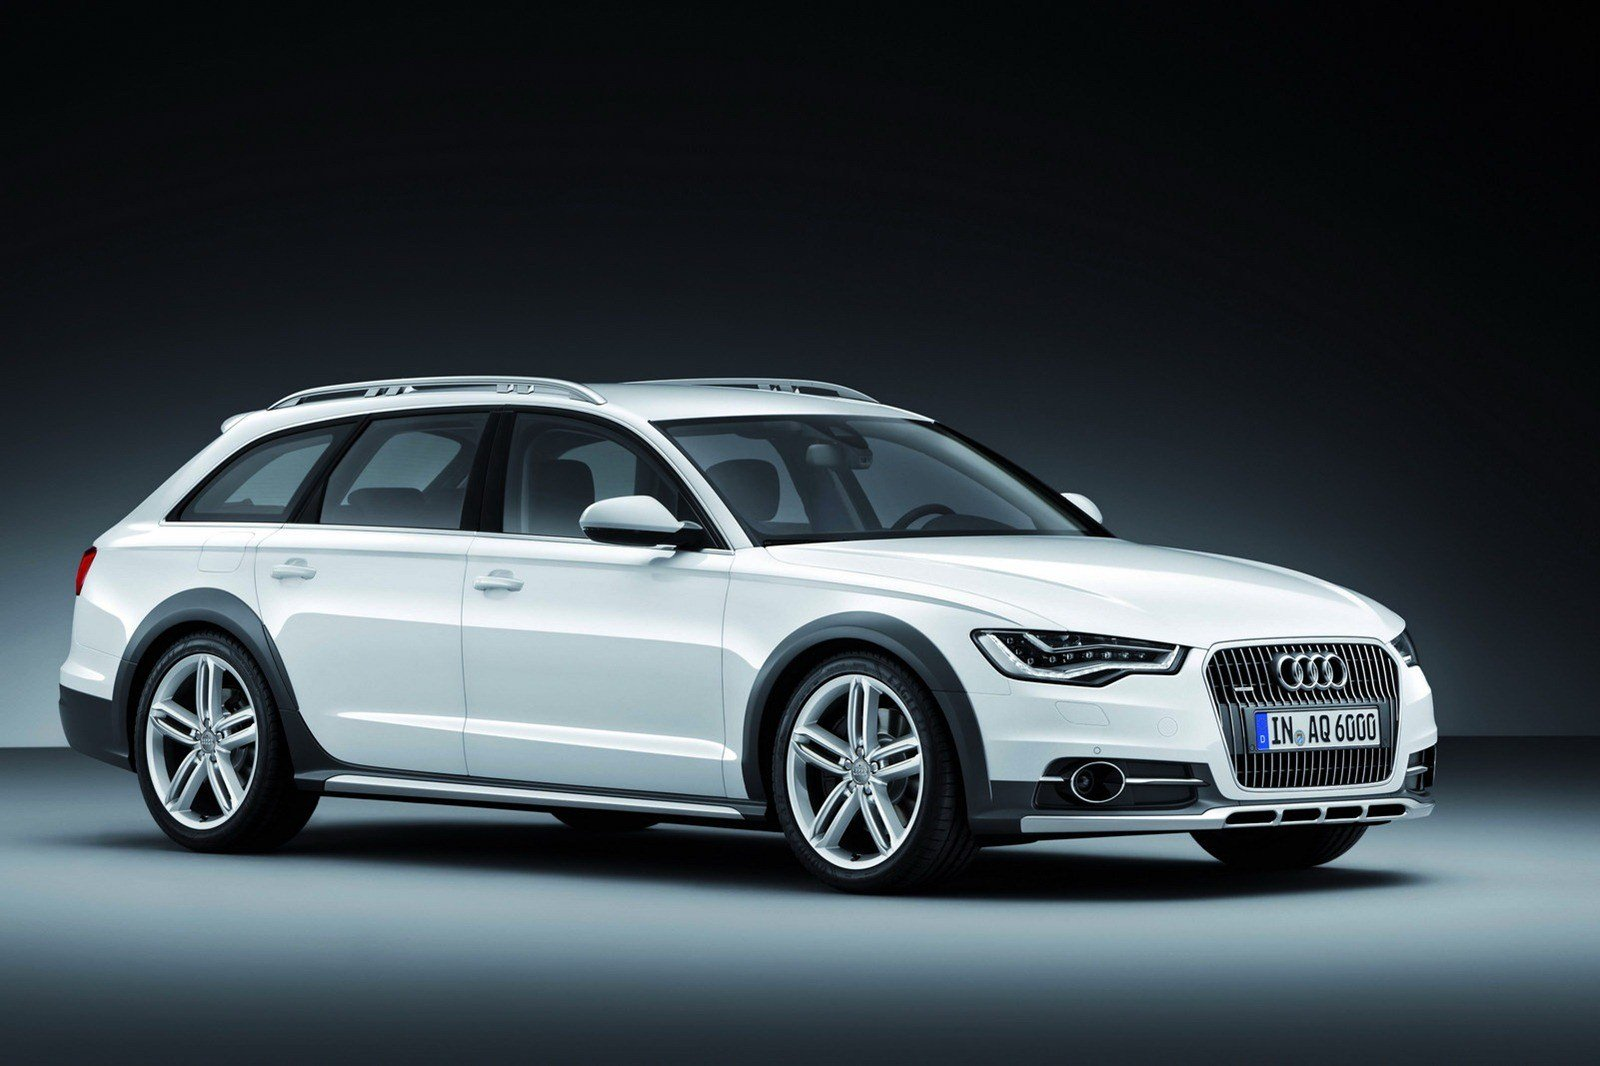 Latest New 2013 Audi A6 Allroad Unveiled Autoevolution Free Download